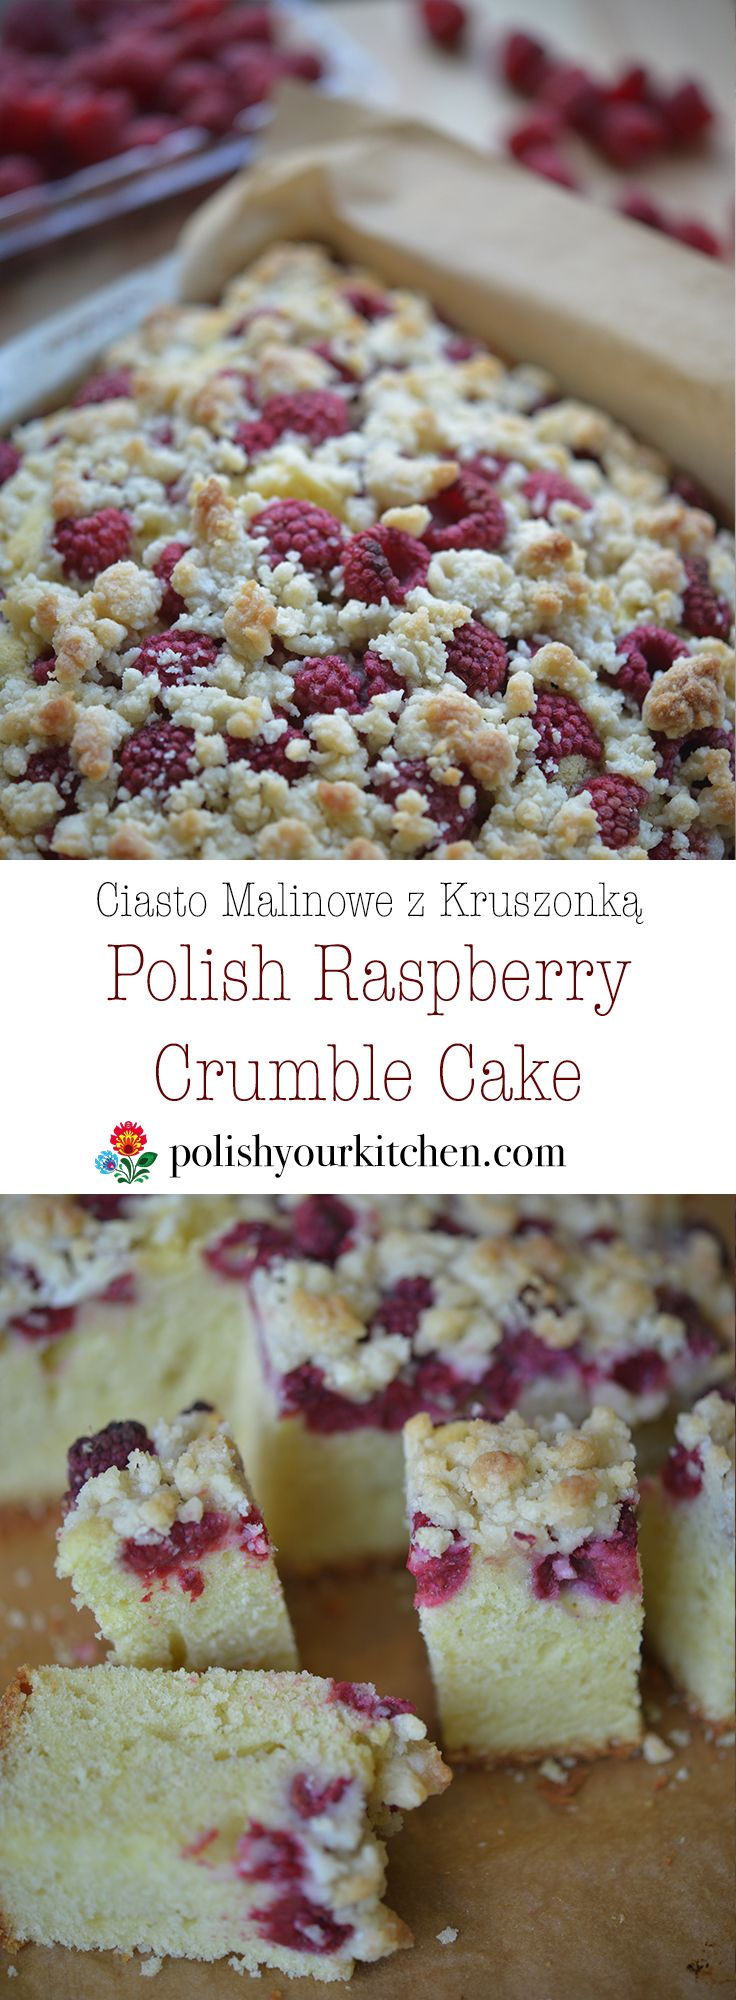 Easy and delicious Polish Raspberry Crumble Cake, perfect after summer raspberry picking. Simple recipe for this sweet Polish dessert by Anna @polishyourkitchen